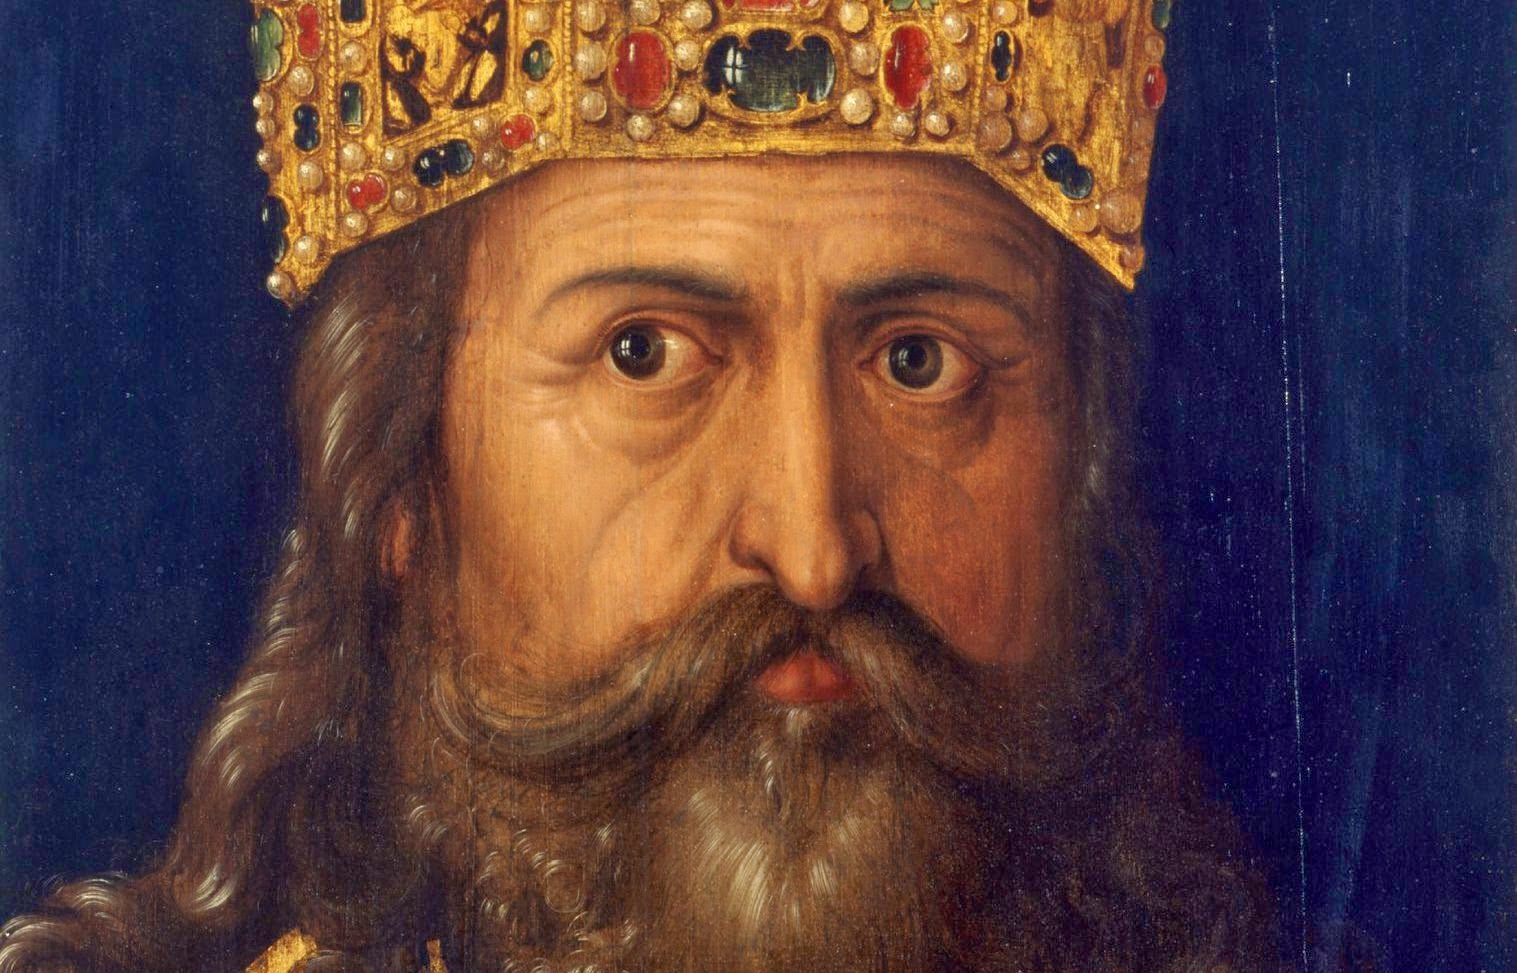 a biography of charlemagne a ruler of the franks Charlemagne's biography and becoming king of the franks in 768 following the death of his father, charlemagne was initially co-ruler with his brother.